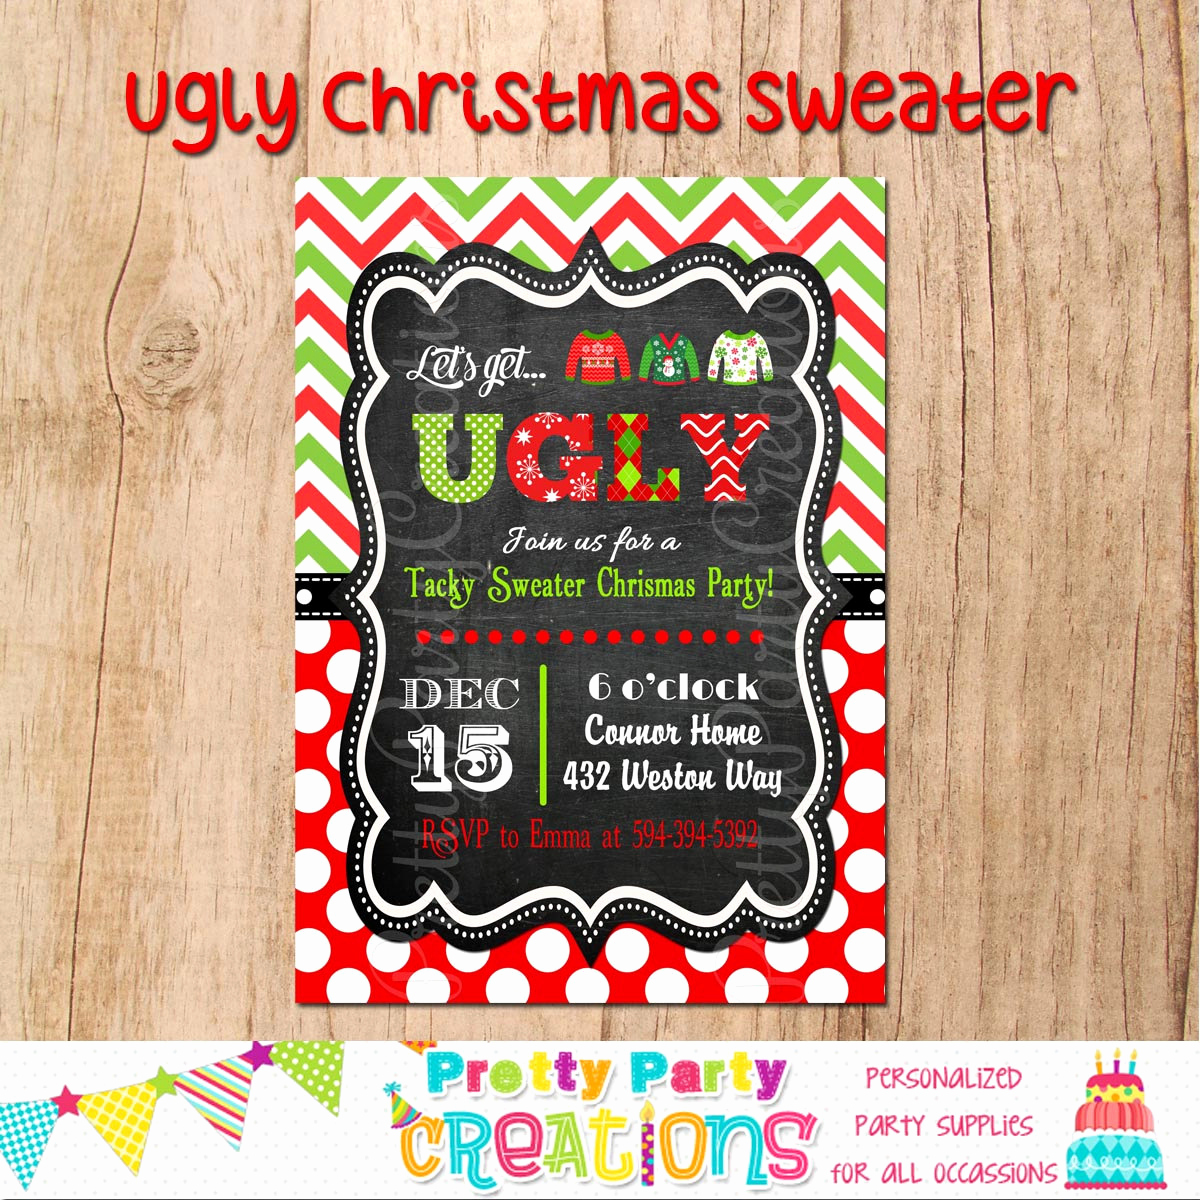 Ugly Sweater Christmas Party Invitation Lovely Ugly Christmas Sweater Invitation You Print